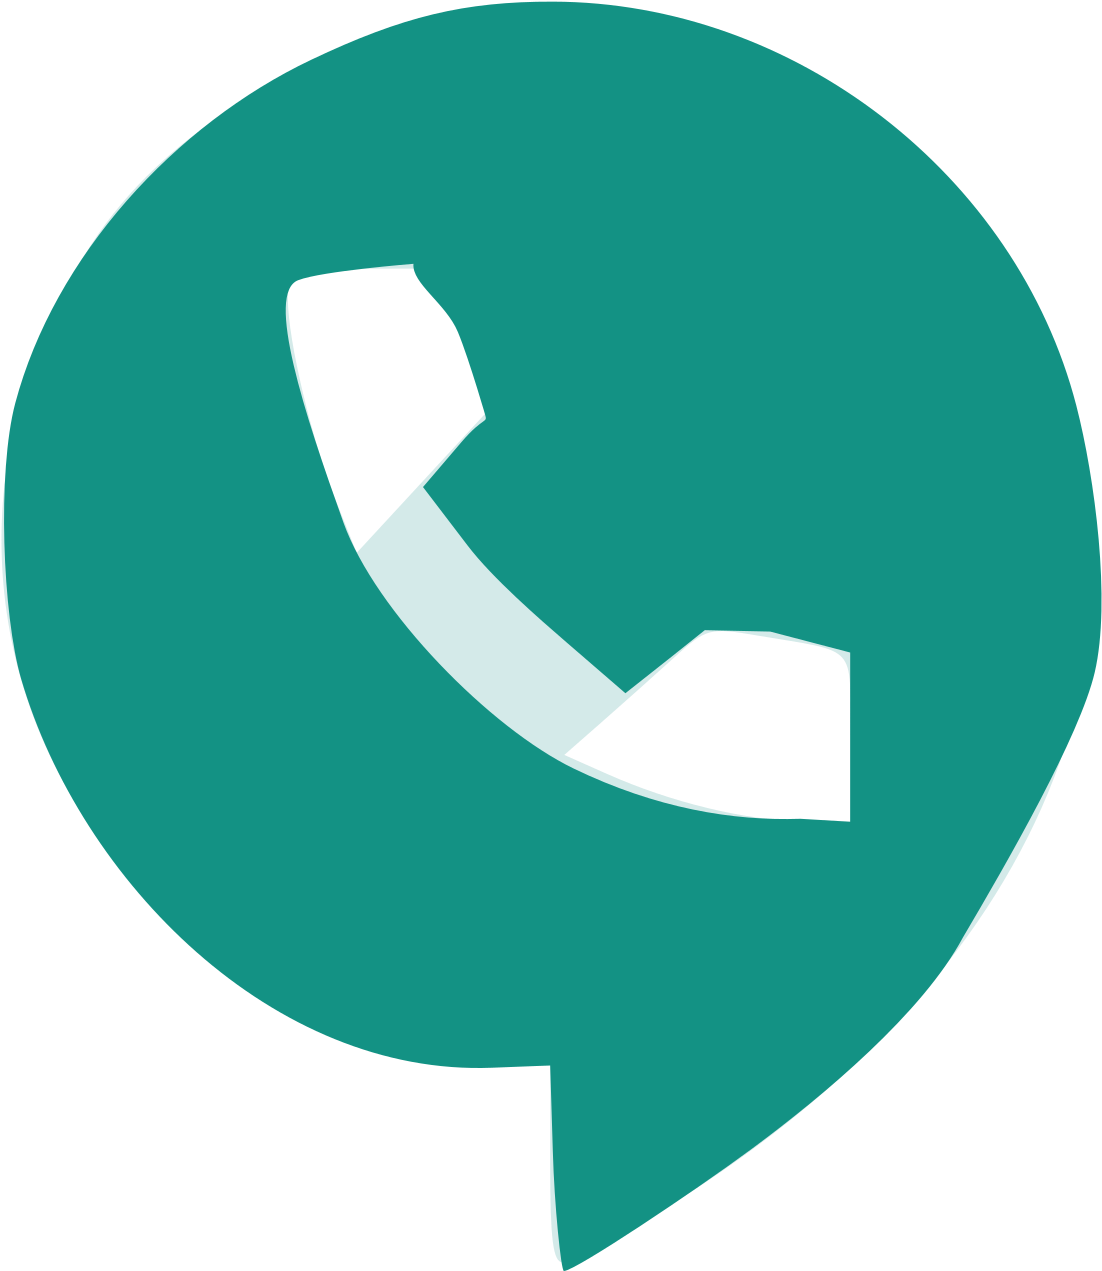 Download Google Voice - Full Size PNG ...